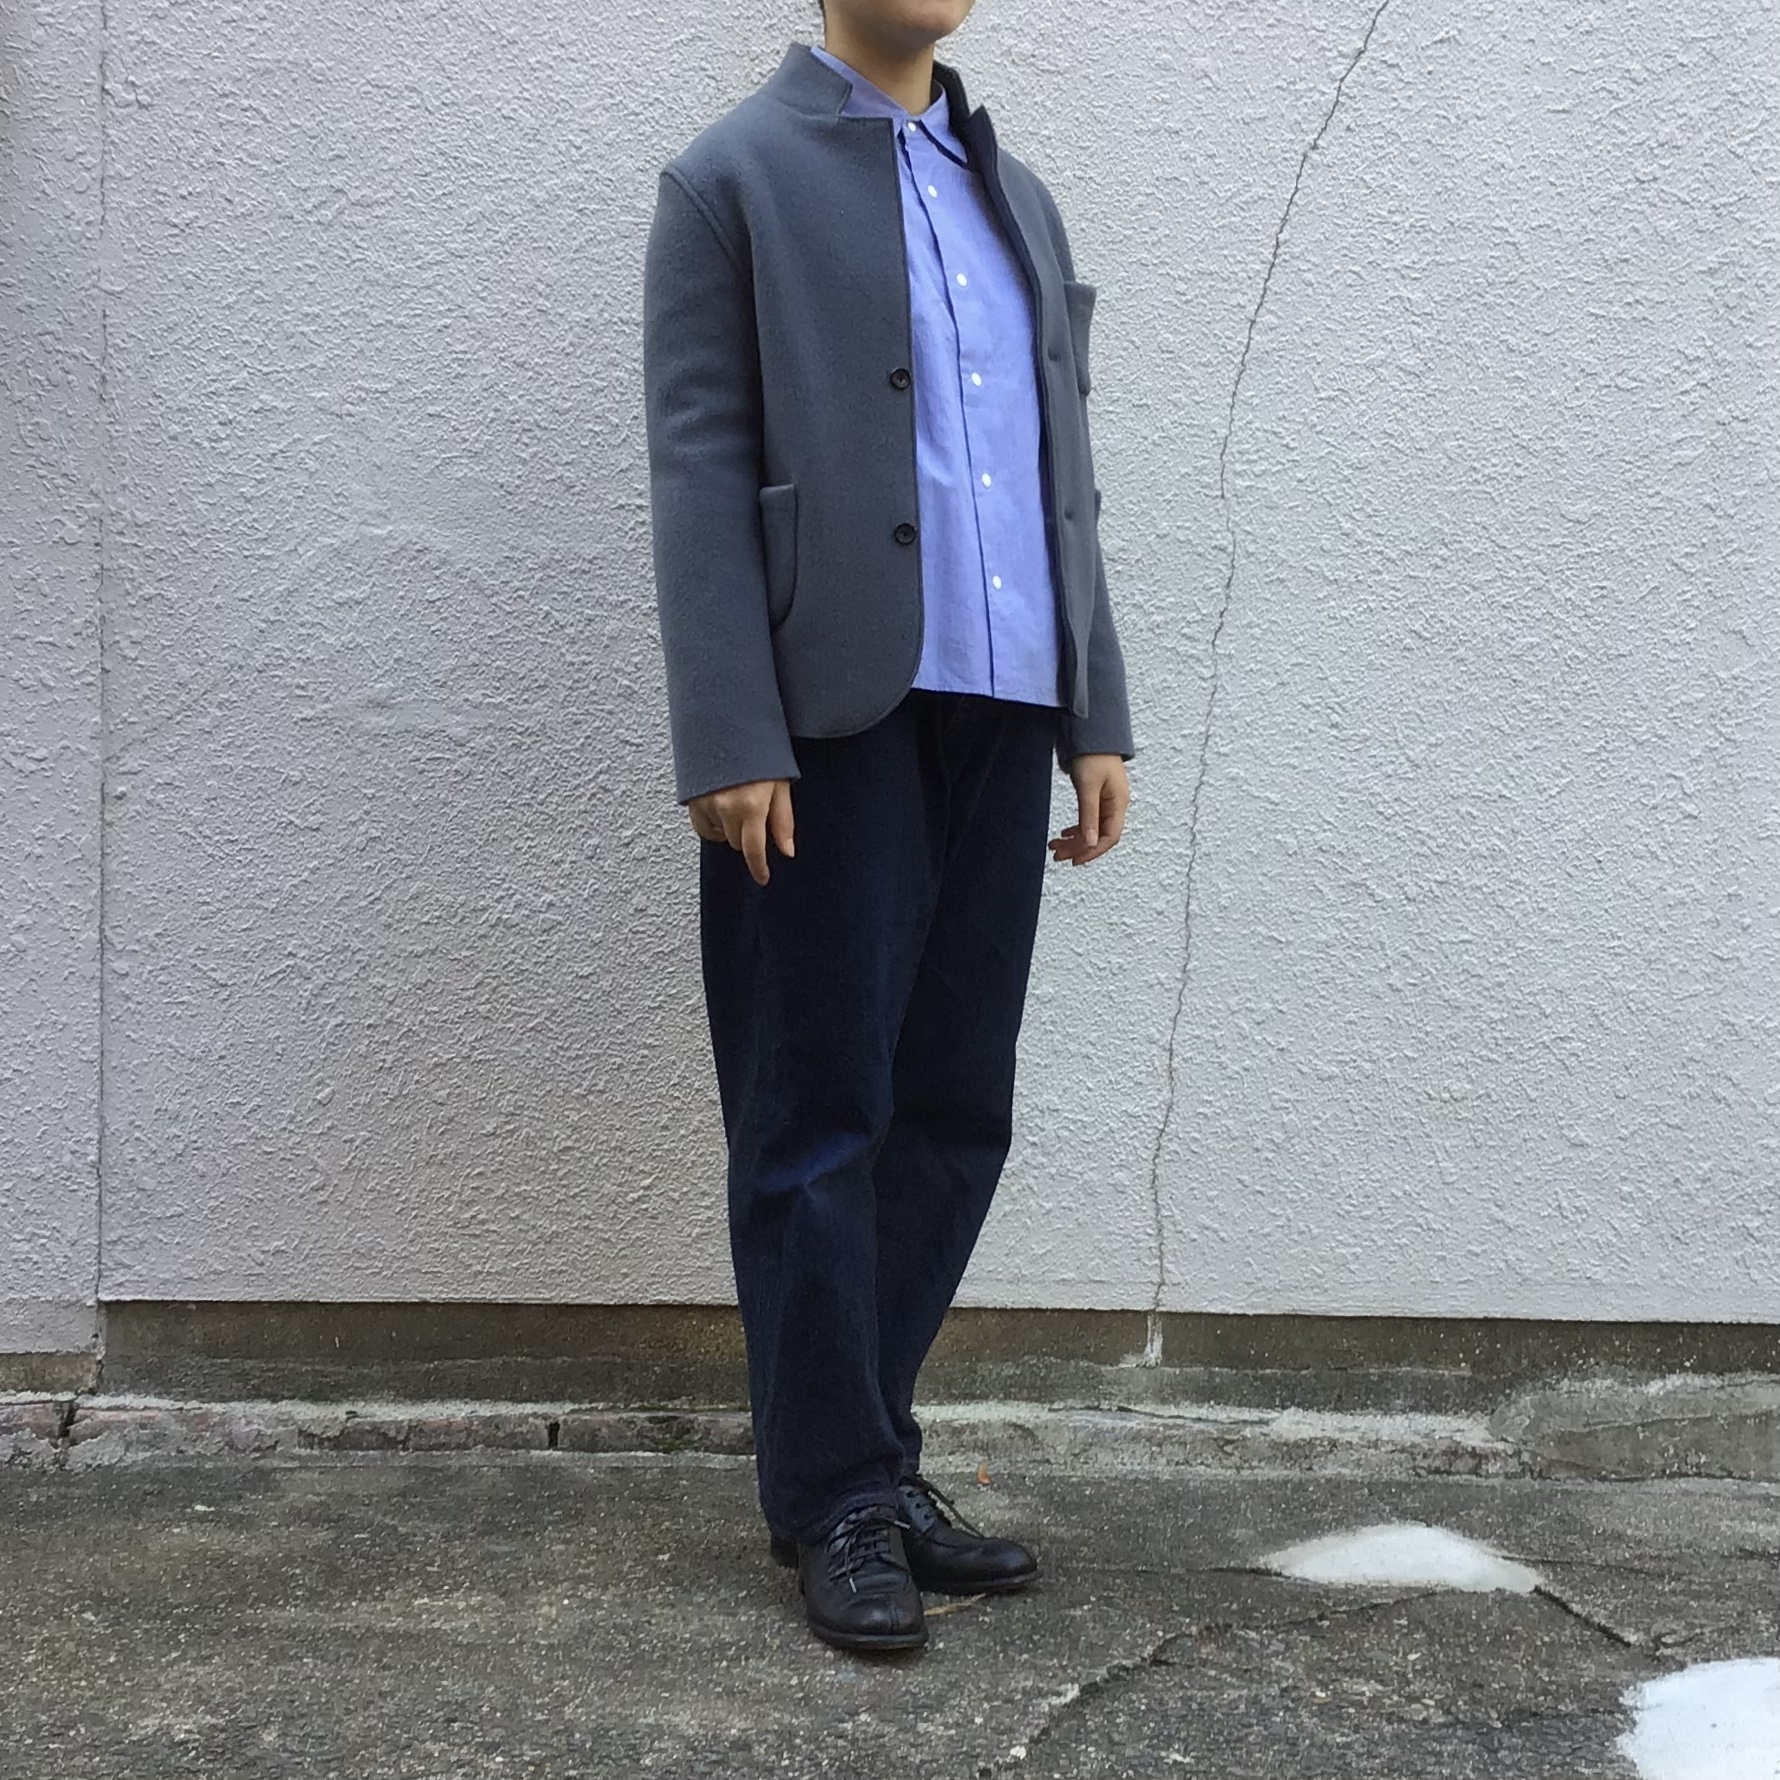 R&D.M.Co-/OLDMAN'S TAILOR Wool Felt Knit Jacket /ウールフェルトジャケット #4529